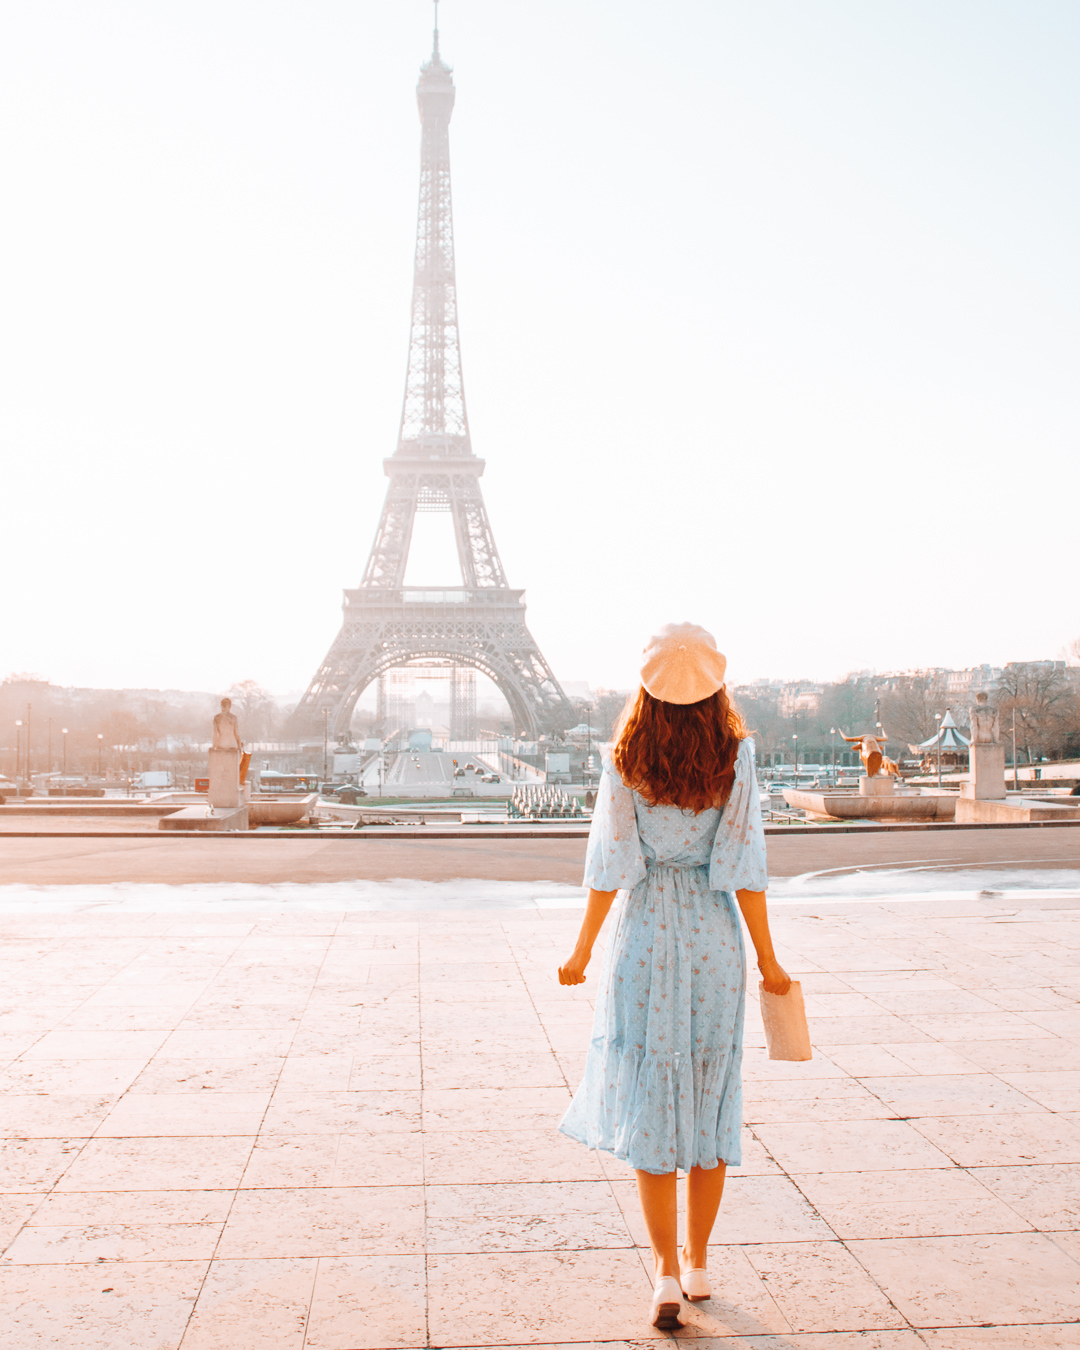 Girl looking at the Eiffel Tower in Paris